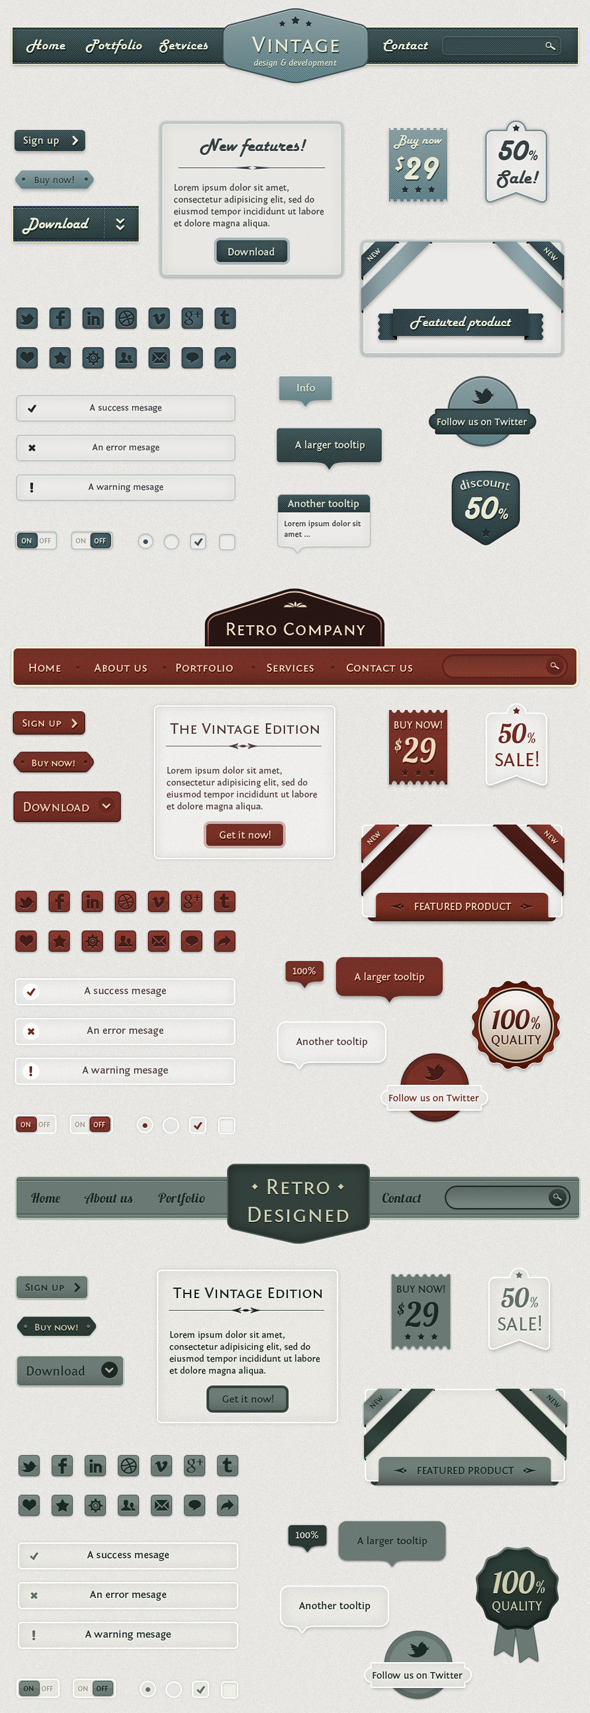 Retro Web Elements - Vintage Touch by loreleyyy